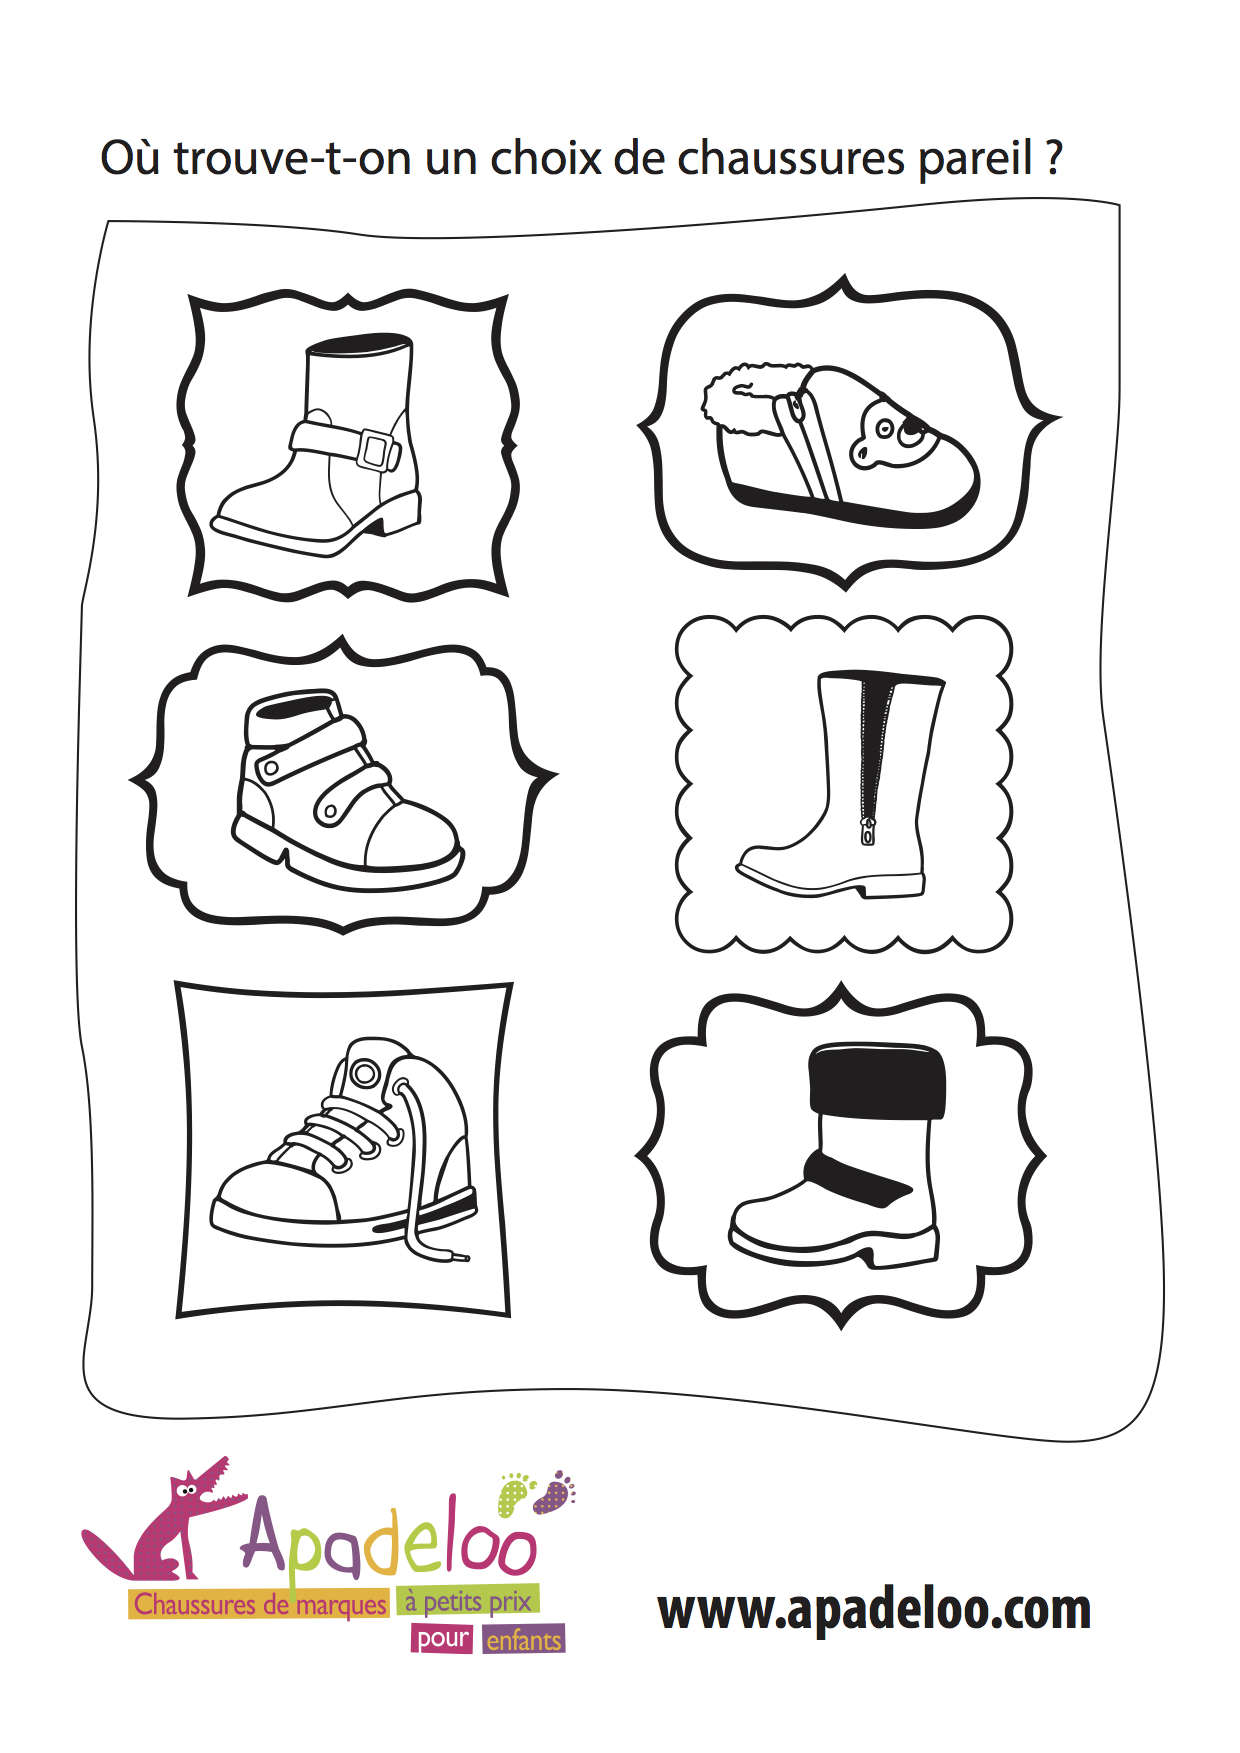 Coloriage Apadeloo Chaussures